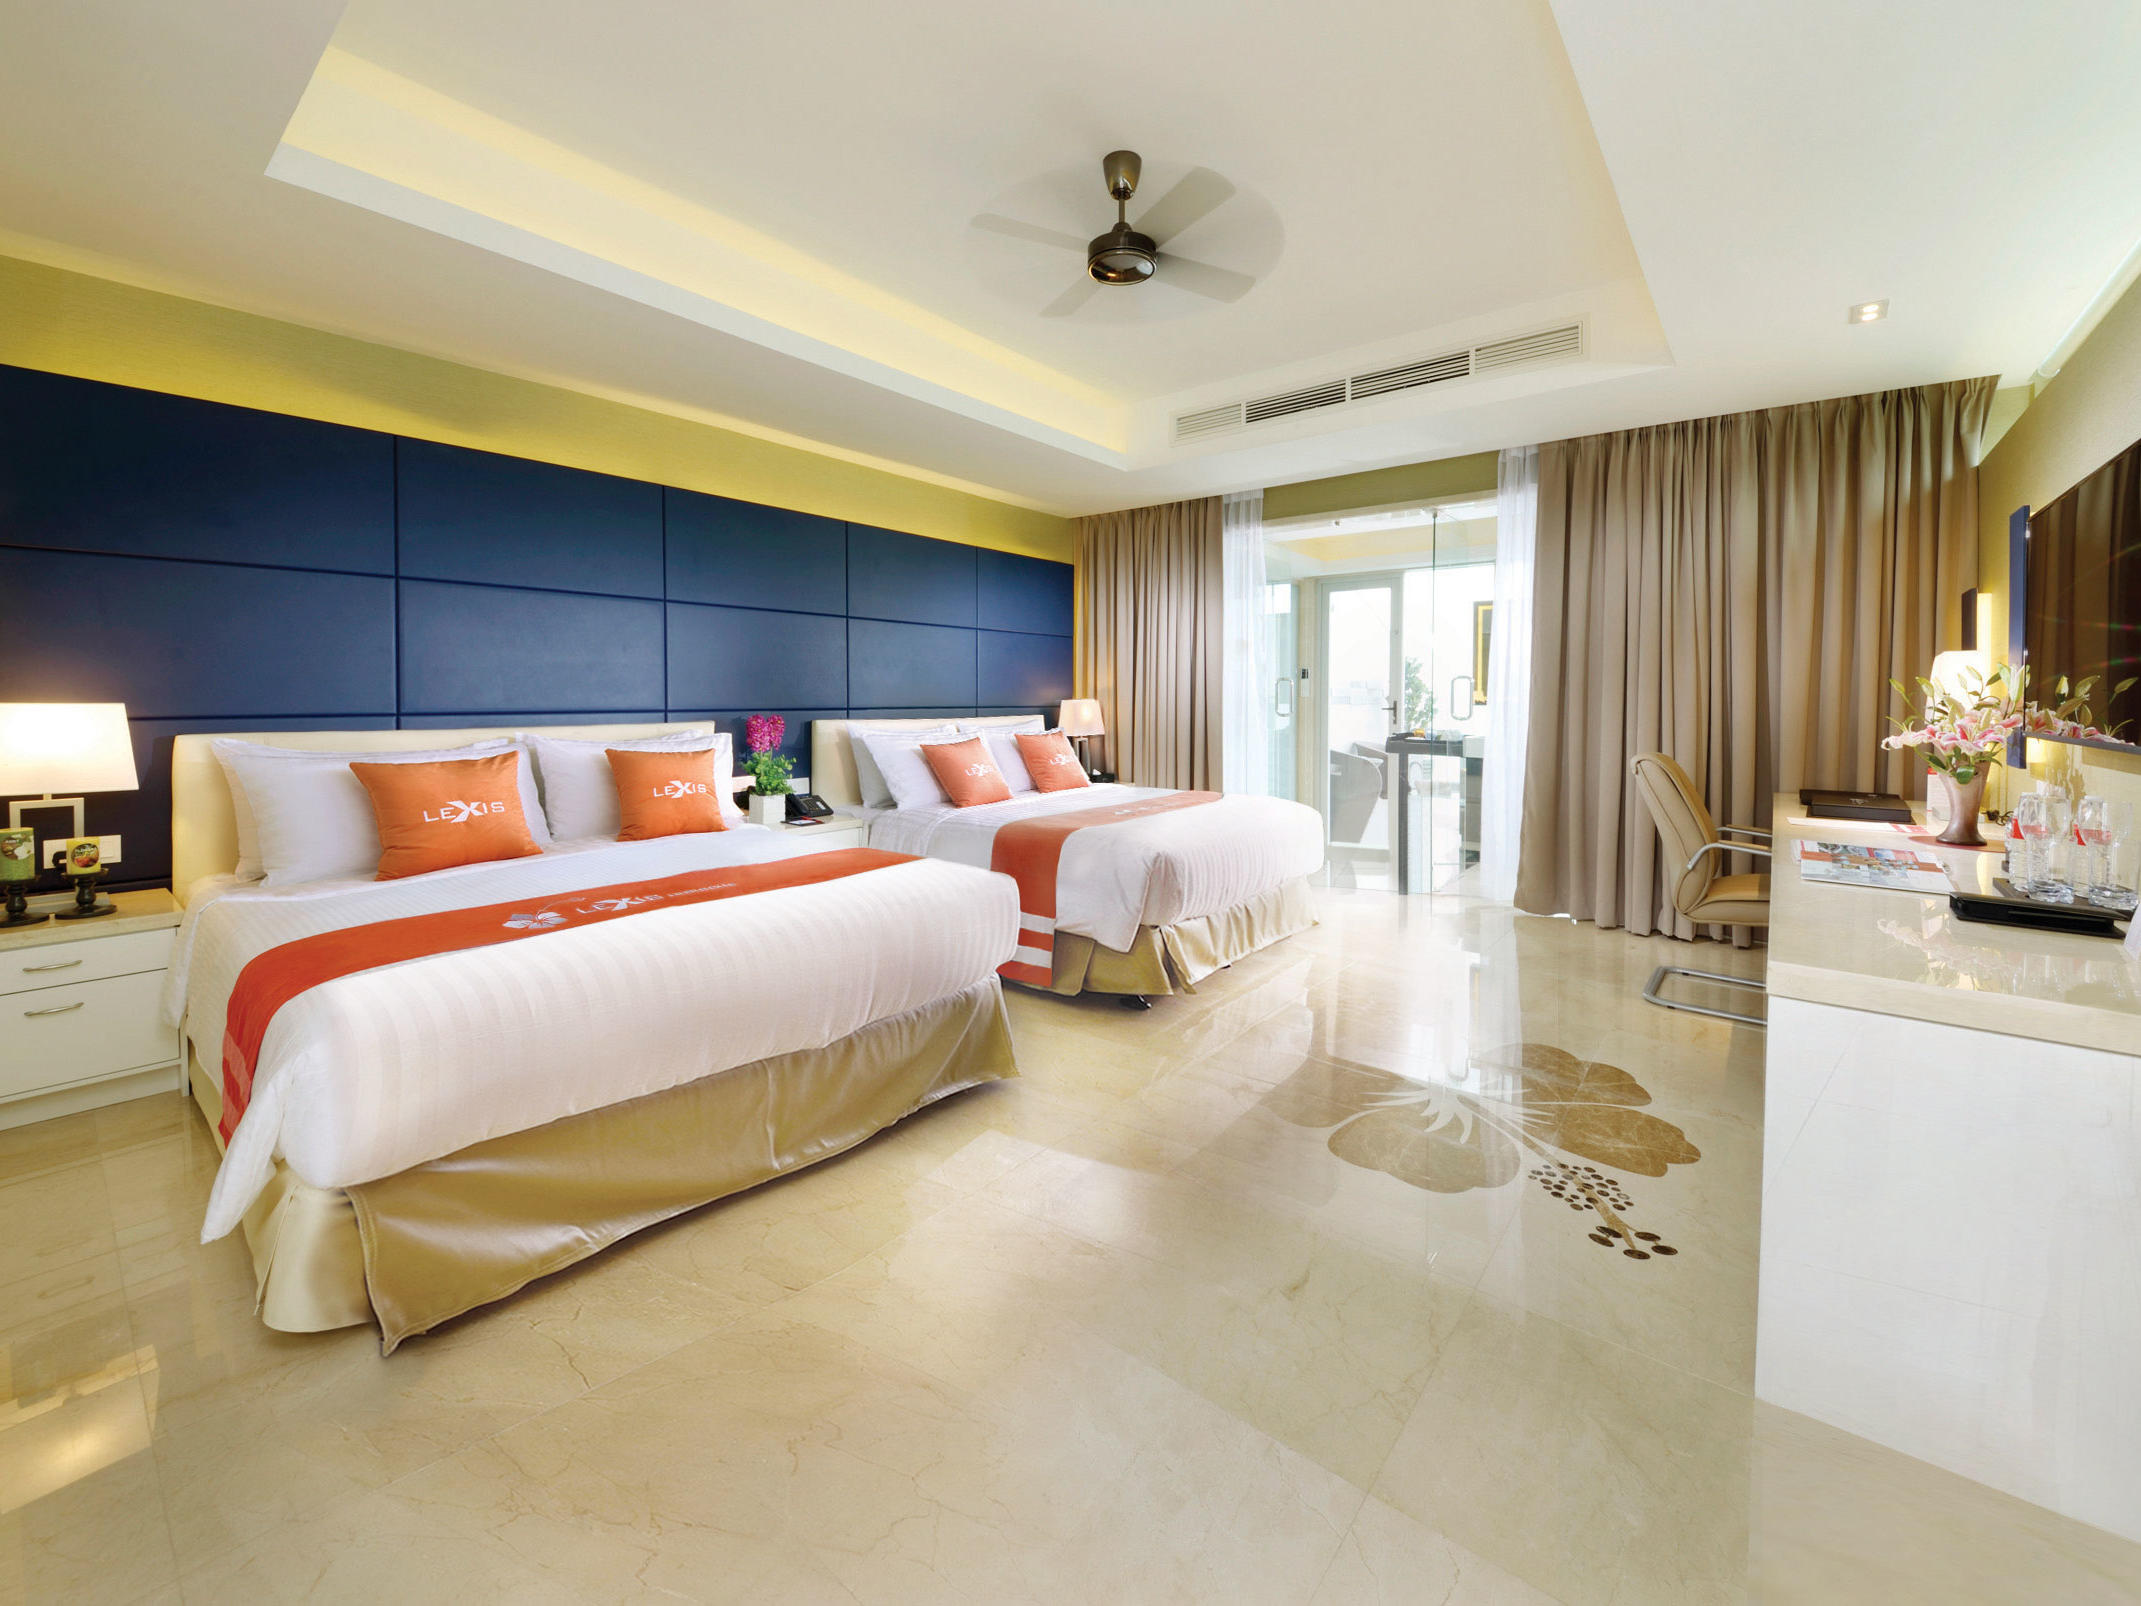 Executive Pool Villa room with two king size bed - Lexis Hibiscus® Port Dickson